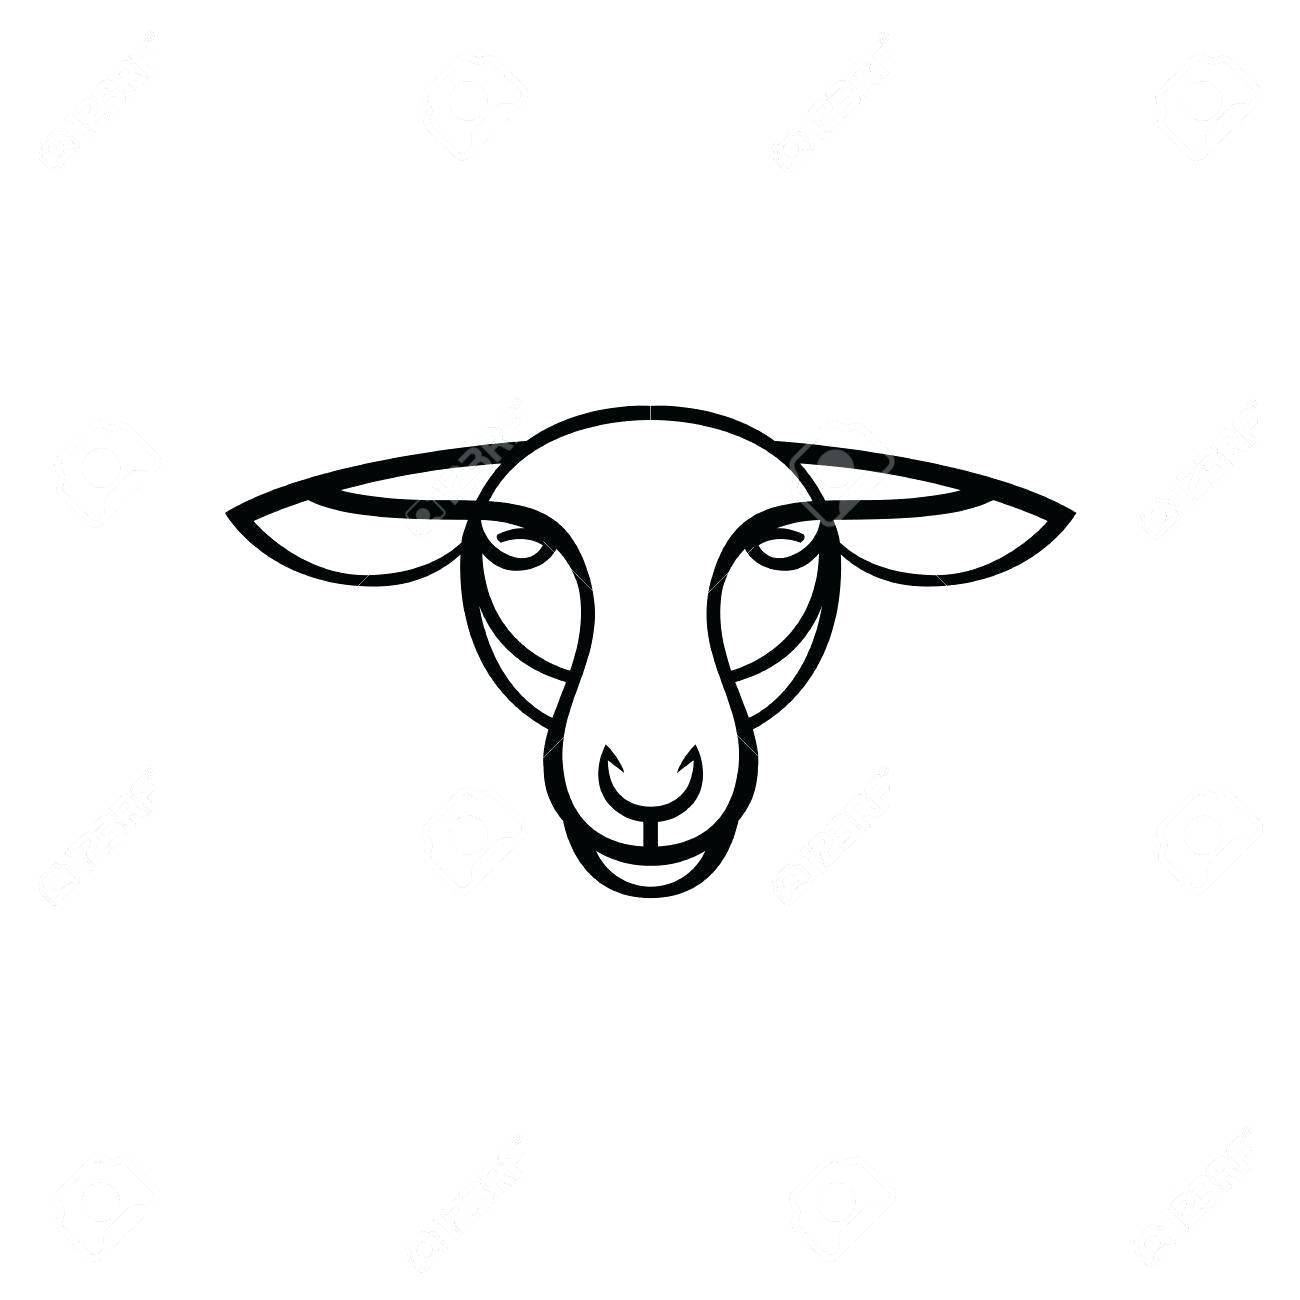 Sheep Face Drawing at GetDrawings.com | Free for personal use Sheep ...